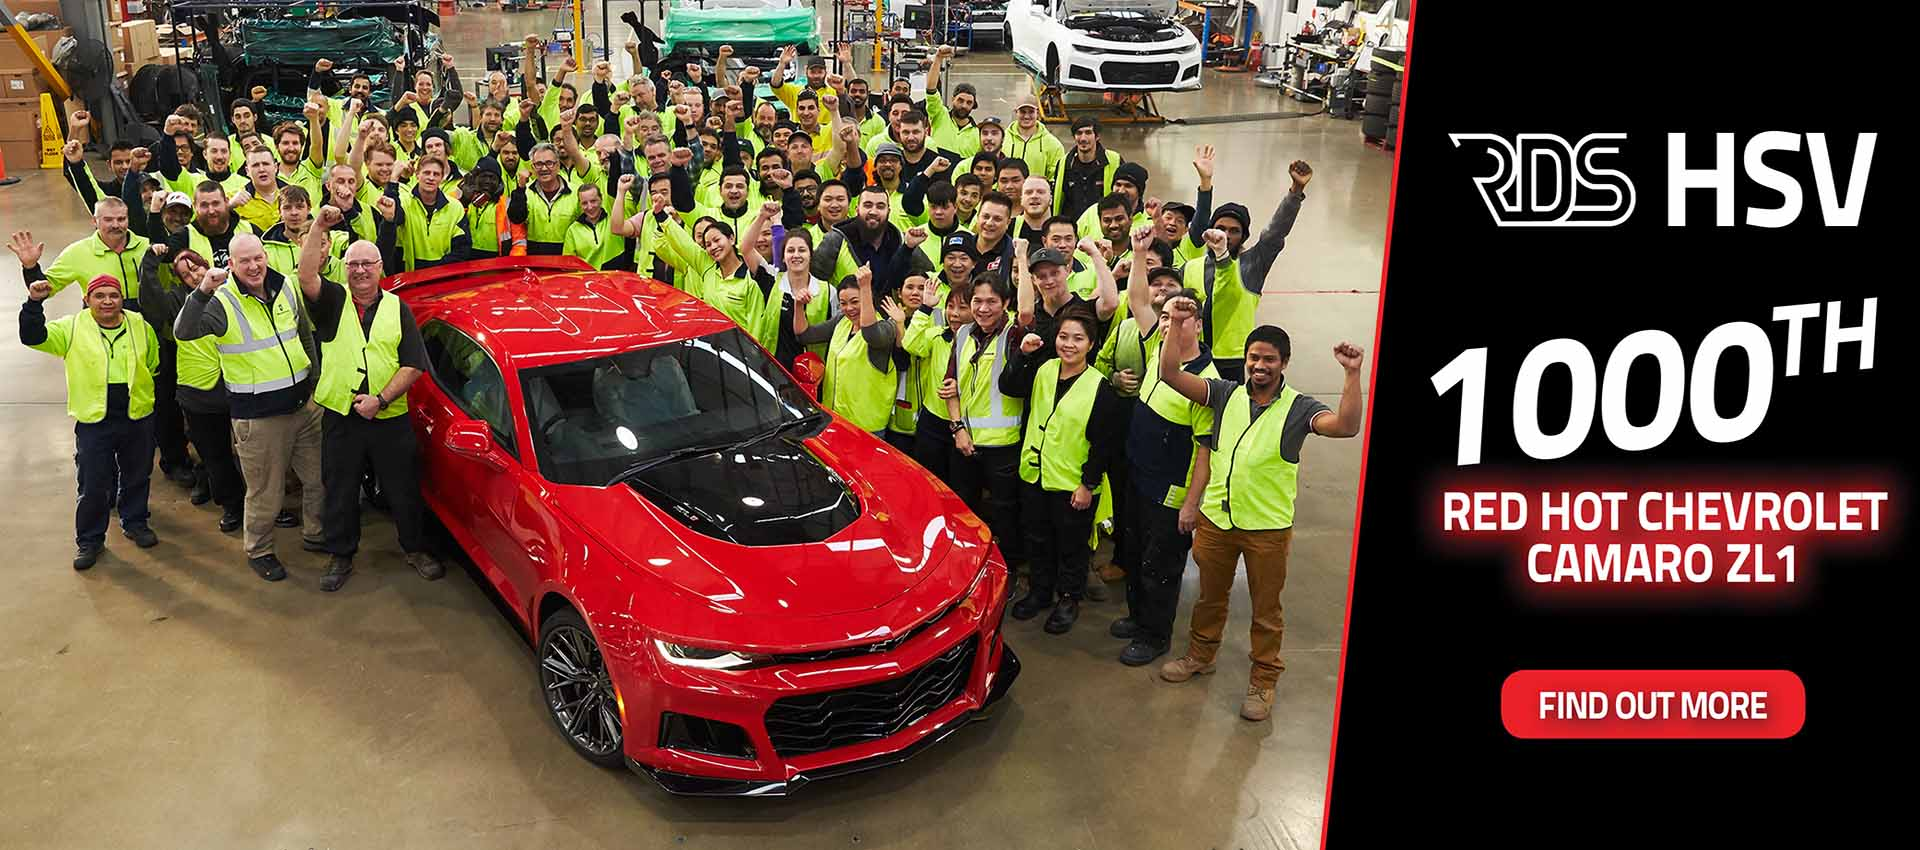 1,000th Chevrolet Camaro Celebration